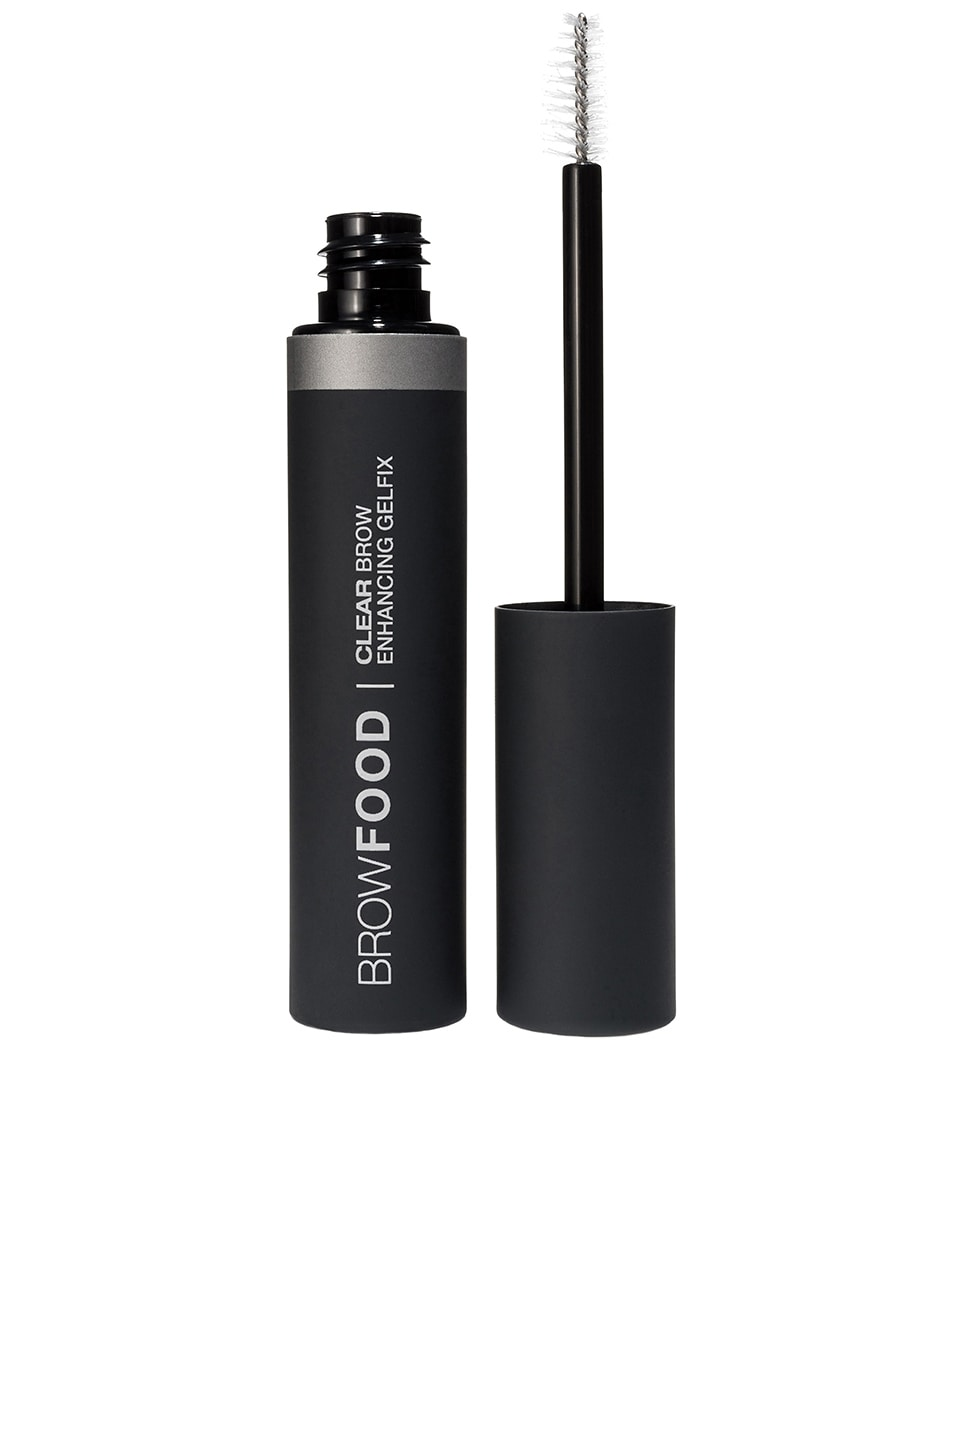 Lashfood Browfood Clear Brow Enhancing Gelfix